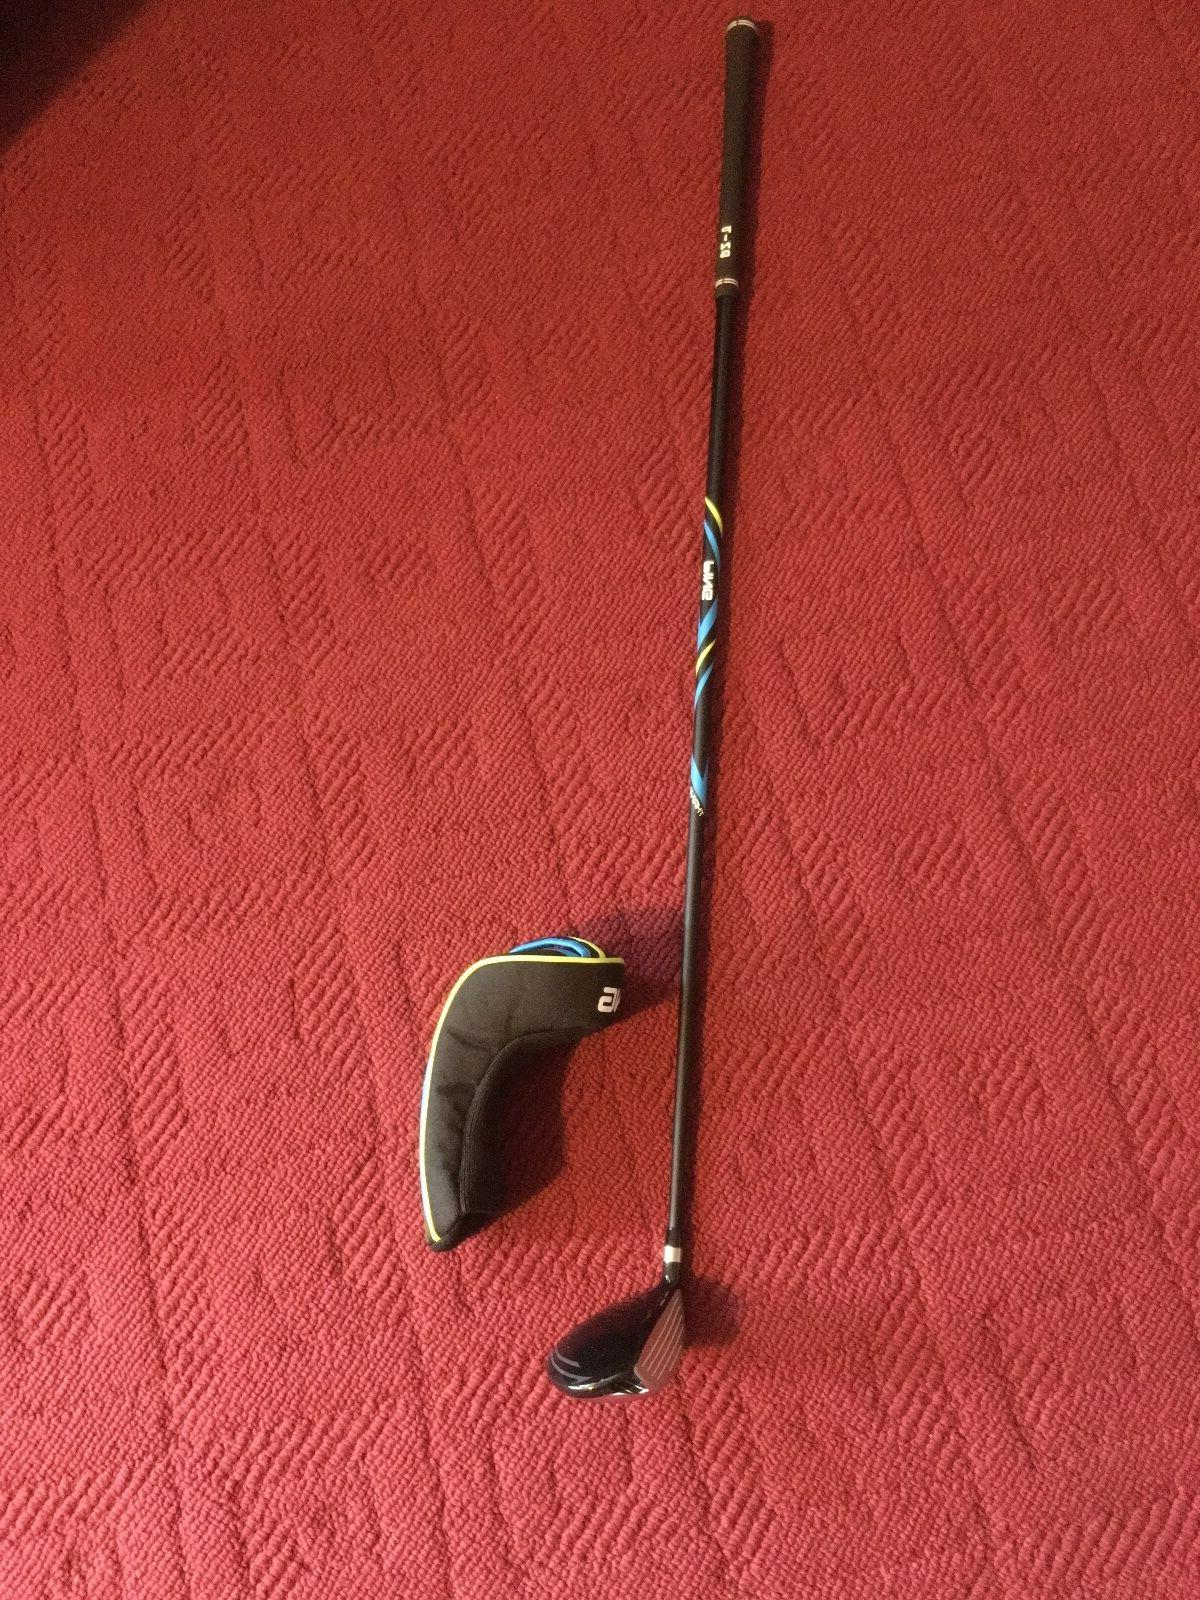 Ping Thrive Complete Golf Handed NEVER USED!